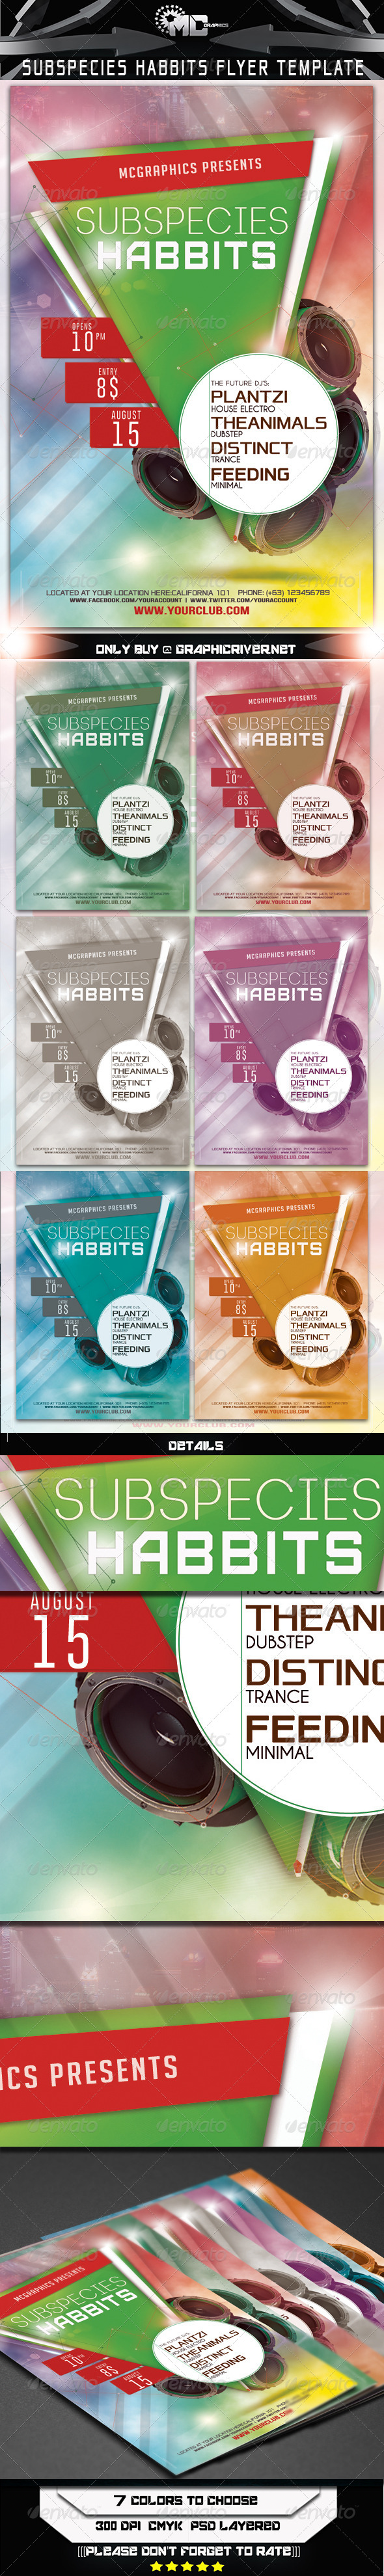 Subspecies Habbits Flyer Template - Flyers Print Templates